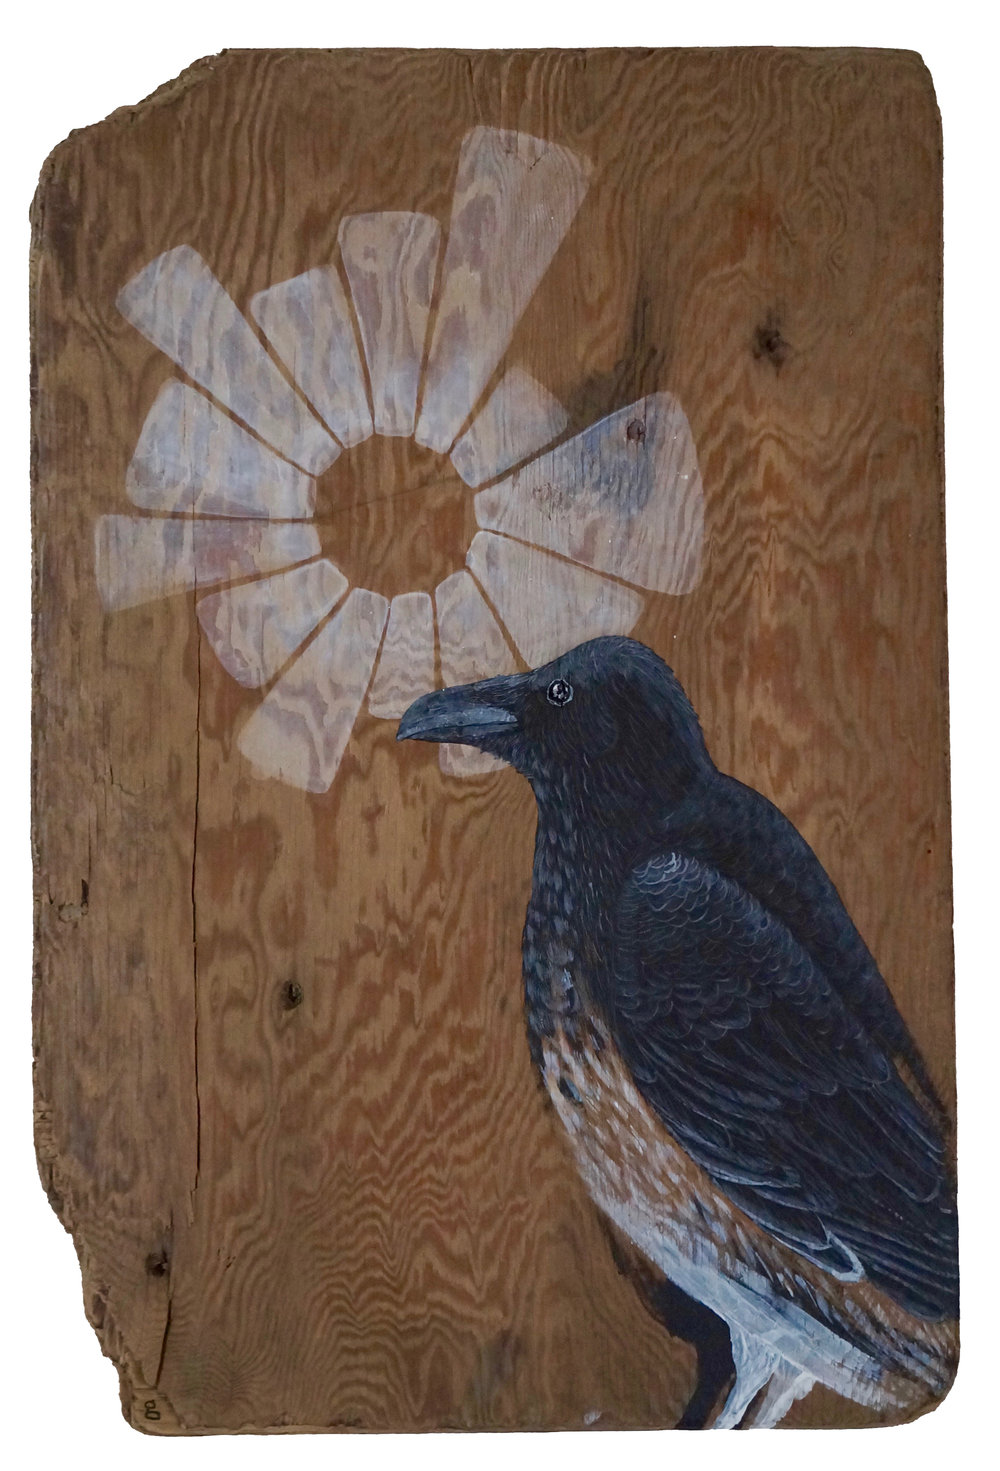 "GHOST RAVEN  2017  ACRYLIC ON FOUND WOOD  21"" x 14"" x 1/2""  SOLD"